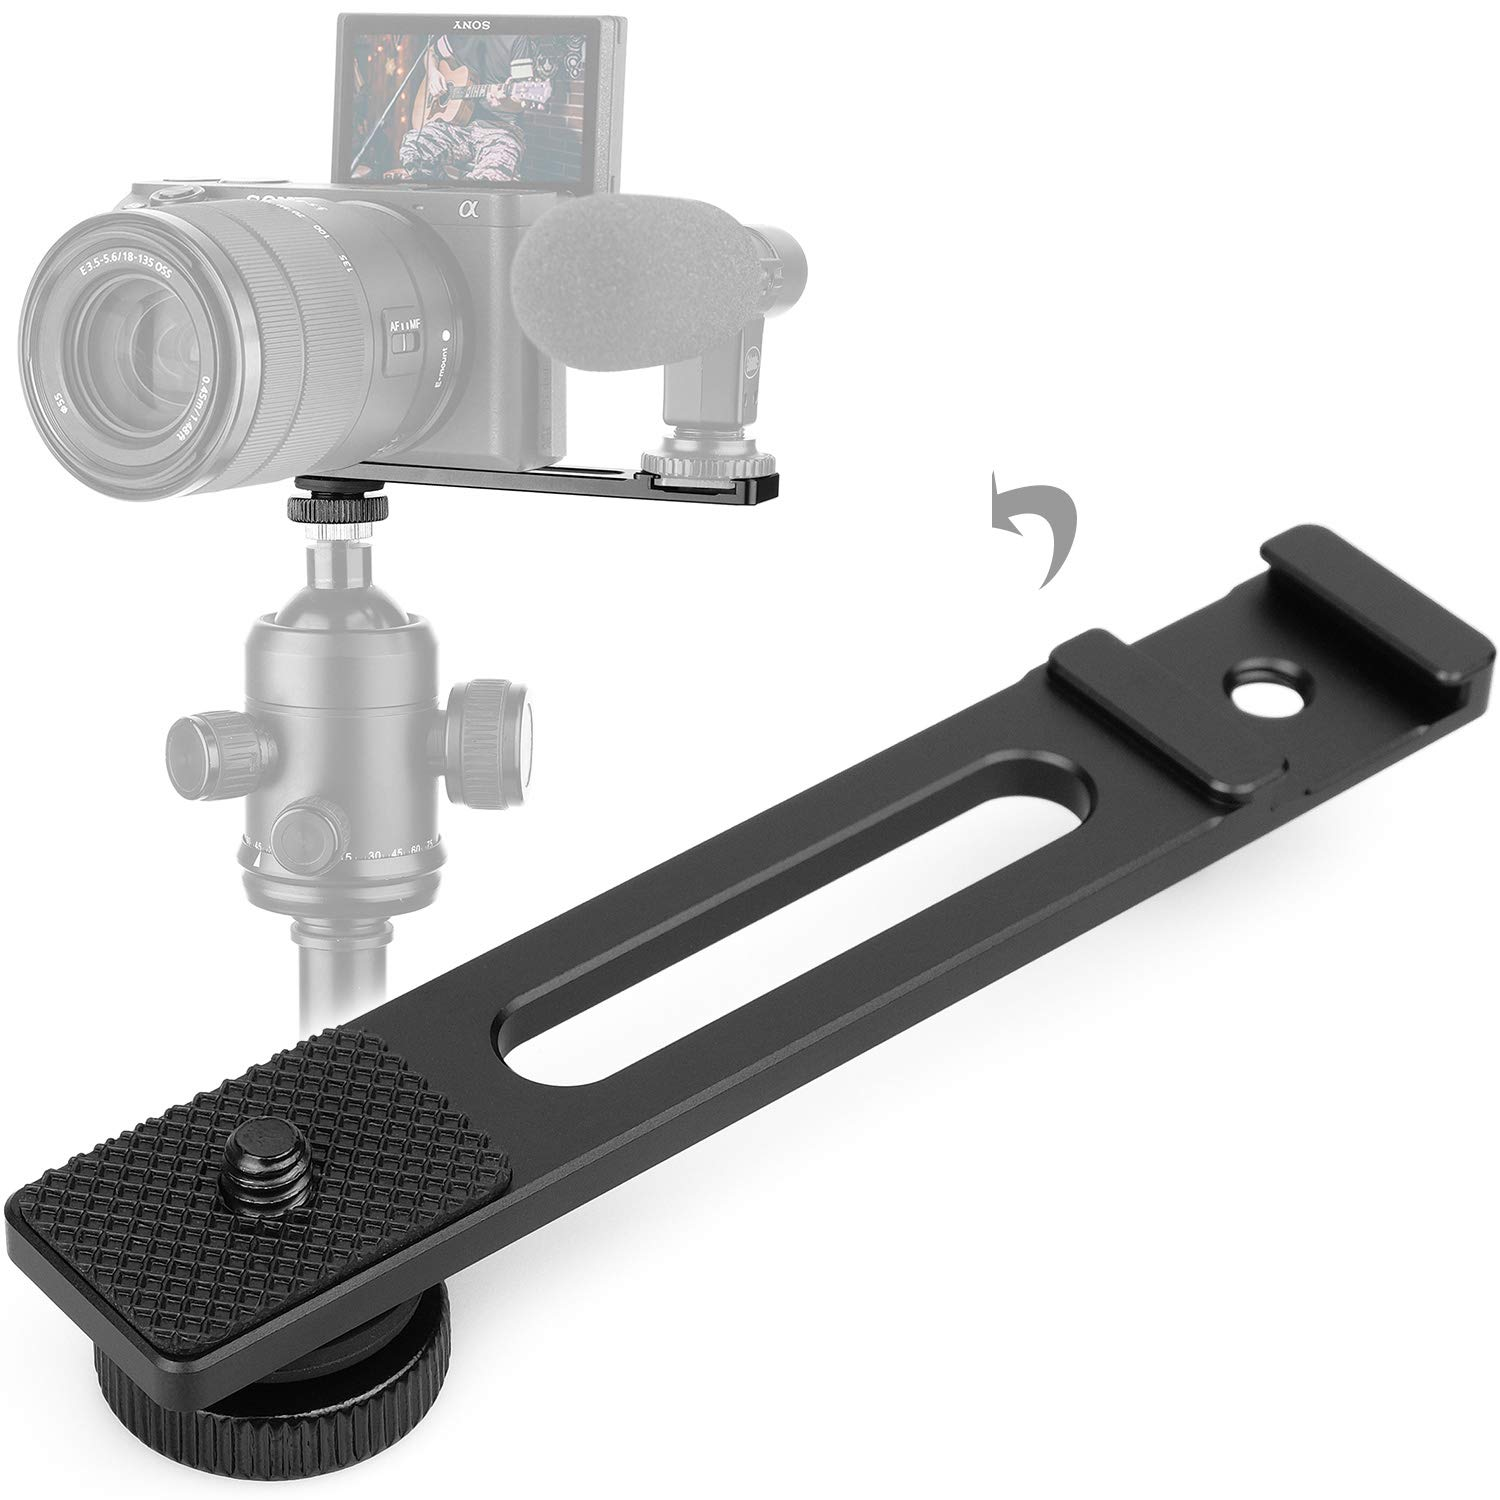 ChromLives Cold Shoe Bracket Extension Bar Hot Shoe Extension Vlog Video Microphone Mount with 1/4'' Tripod Screw for Mirrorless Camera Vlogging Sony A6400 6300 6500 6000 Zhiyun 4 DJI Osmo Pocket by ChromLives